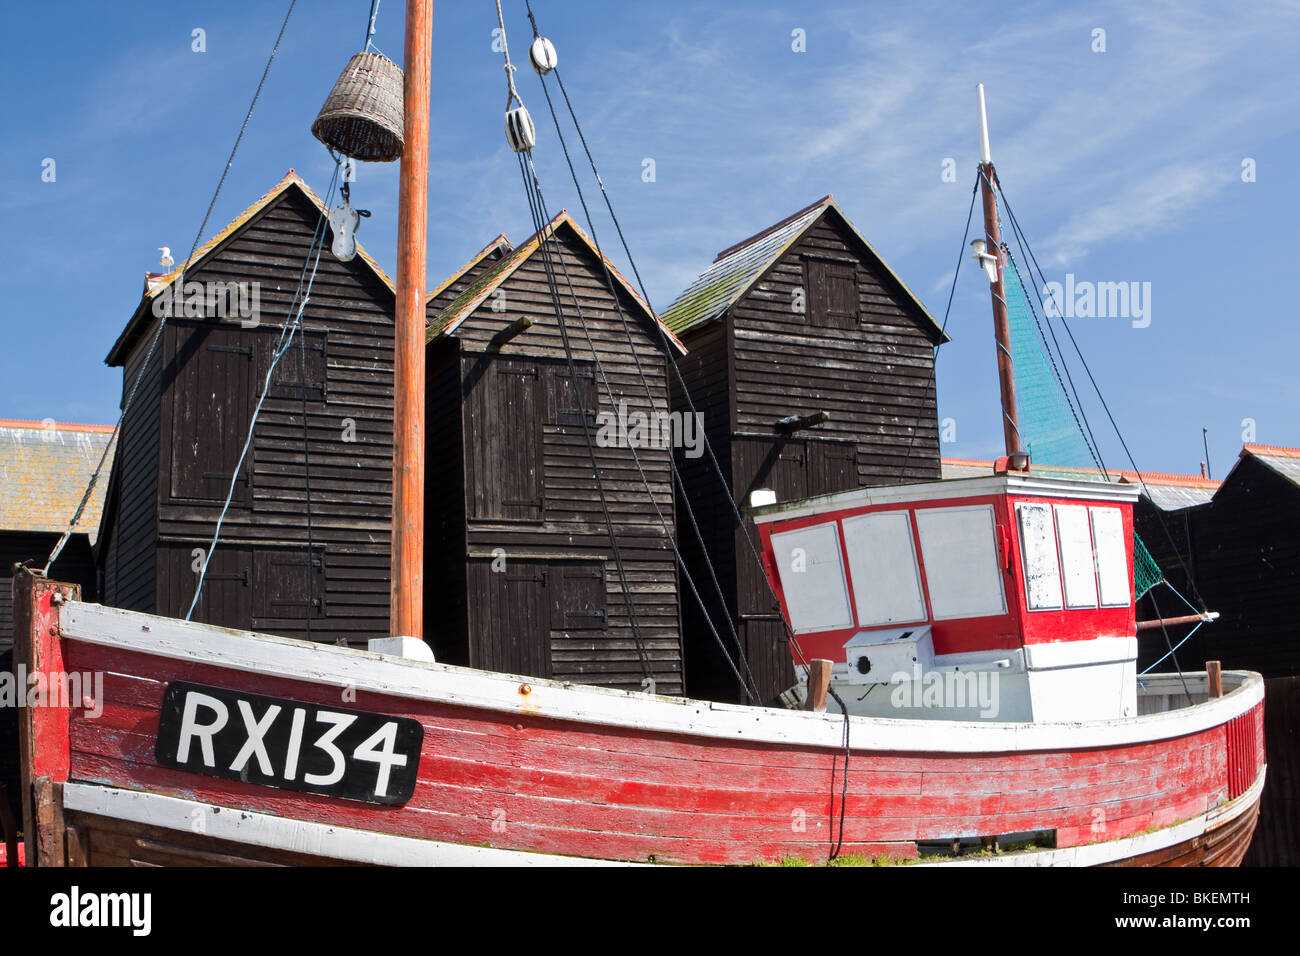 Harbour in hastings, uk. Boats among historic net huts in ...